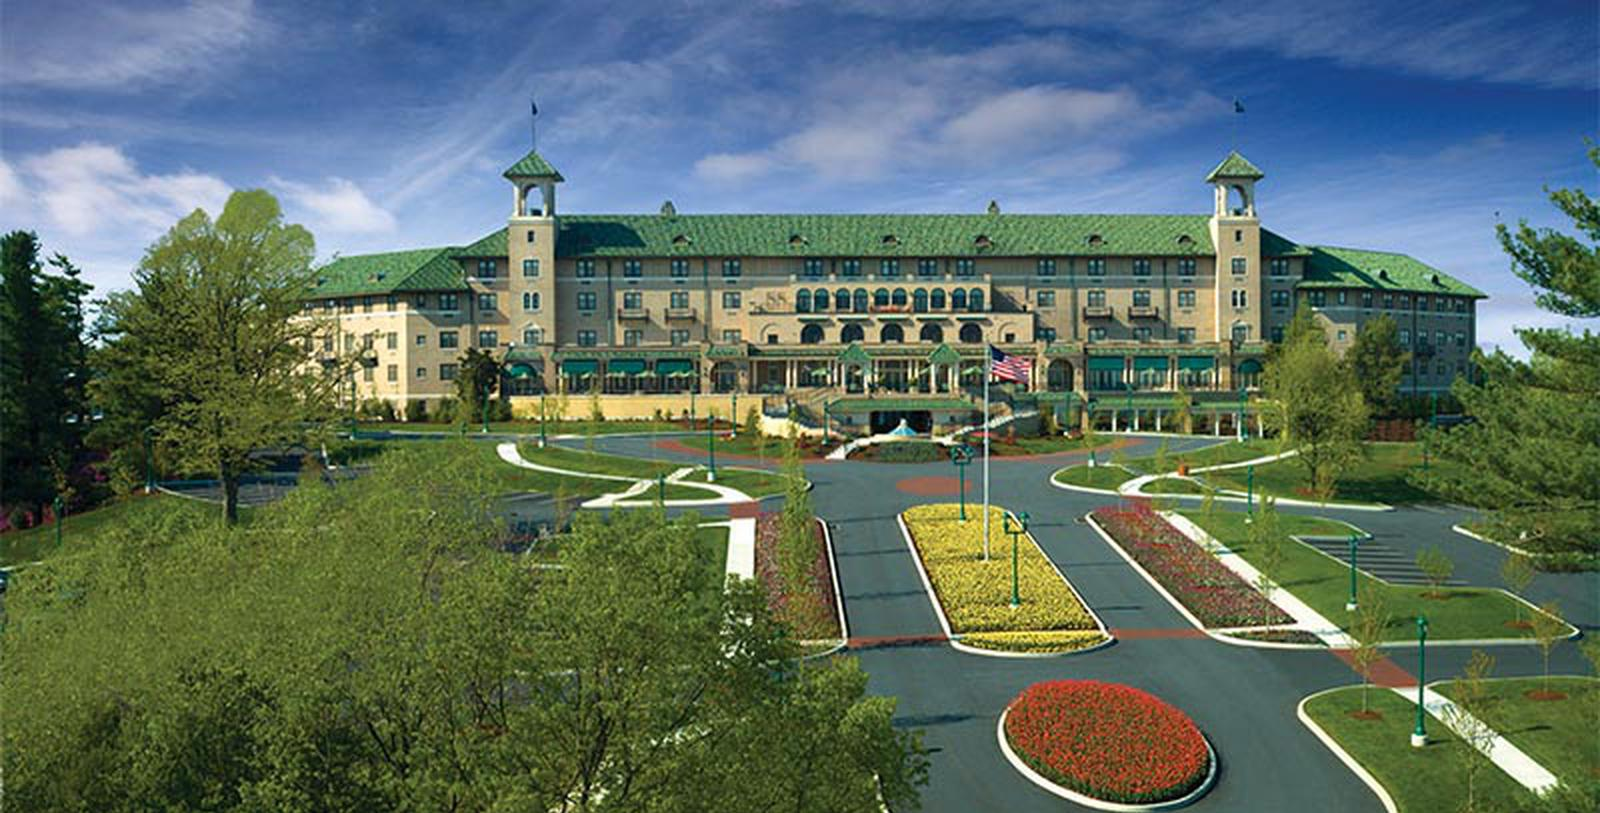 Image of Entrance The Hotel Hershey®, 1933, Member of Historic Hotels of America, in Hershey, Pennsylvania, Special Offers, Discounted Rates, Families, Romantic Escape, Honeymoons, Anniversaries, Reunions